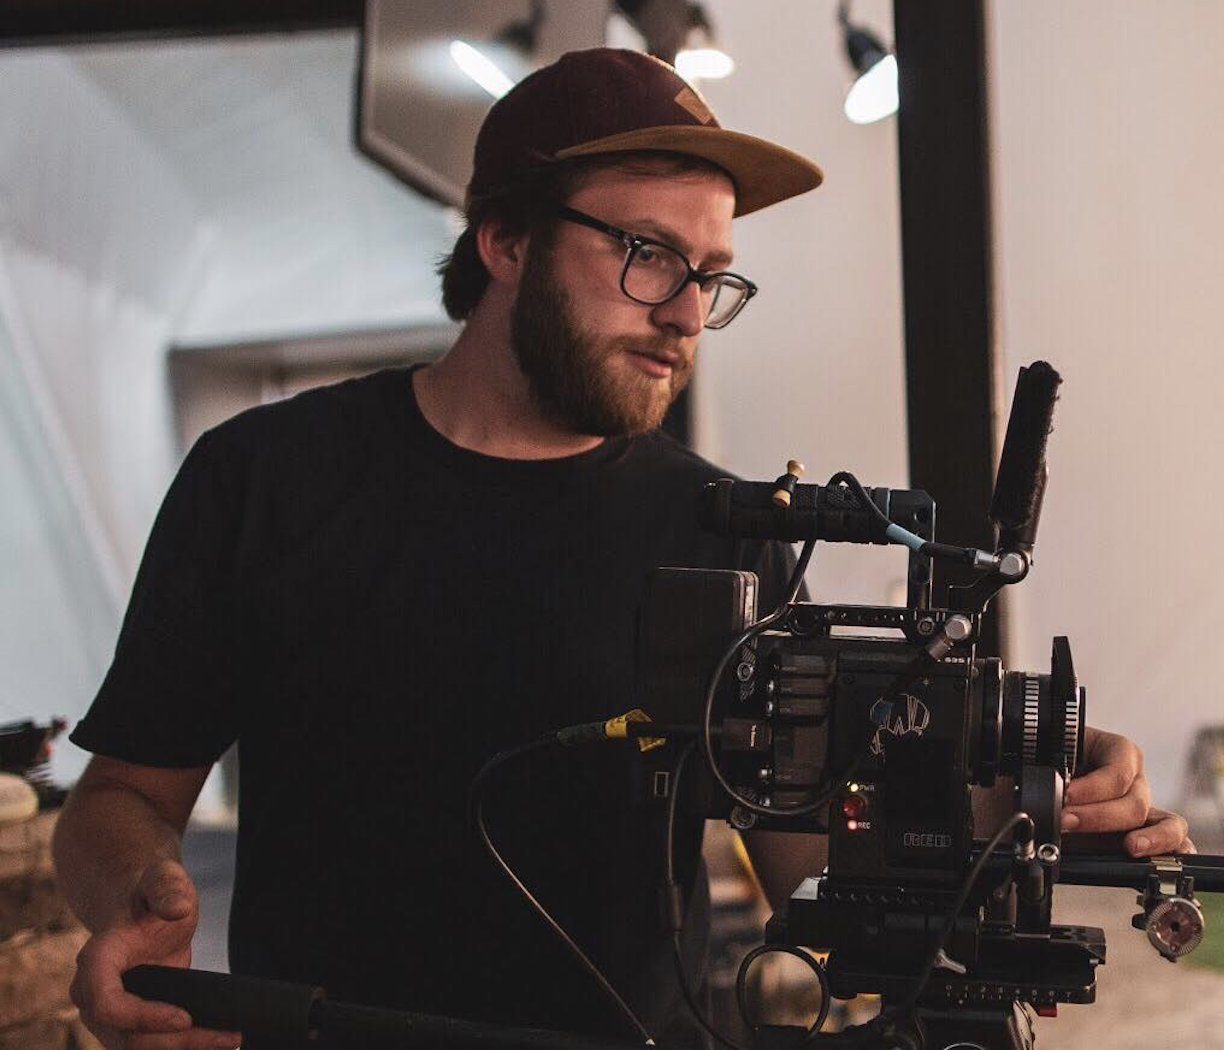 MICHAEL THOMPSON - DIGITAL IMAGING TECHNICIANMichael Thompson is Buffalo based filmmaker. He works in feature, commercial, and reality shows in camera and electrical departments. The Sky Is A Lie was his first full feature film as a DIT.